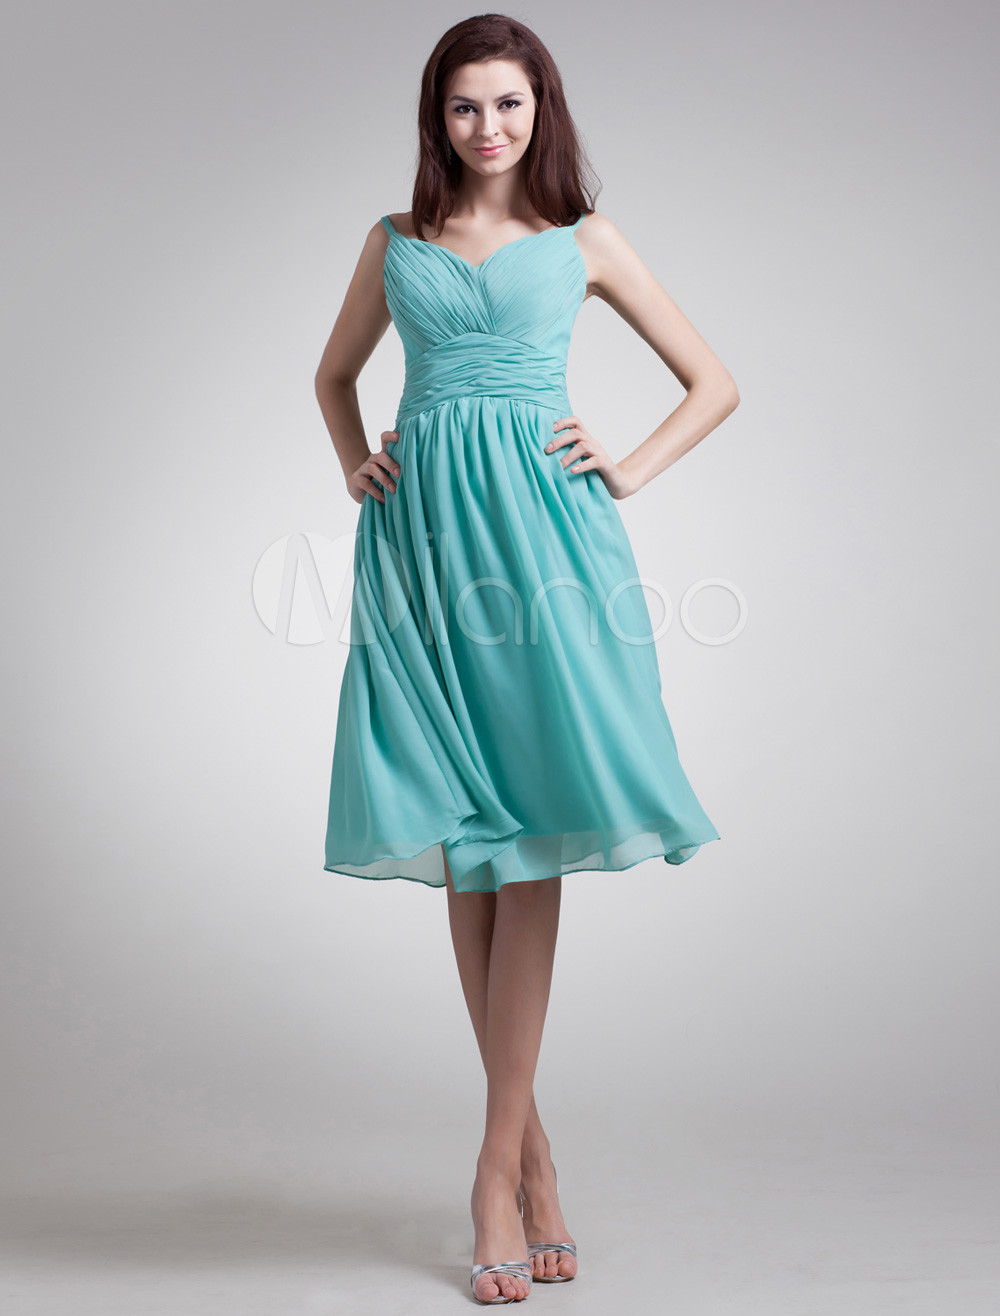 Buy Chiffon Cocktail Dress Turquoise Sweetheart Ruched Prom Dress A Line Sleeveless Knee Length Bridesmaid Dress for $86.44 in Milanoo store